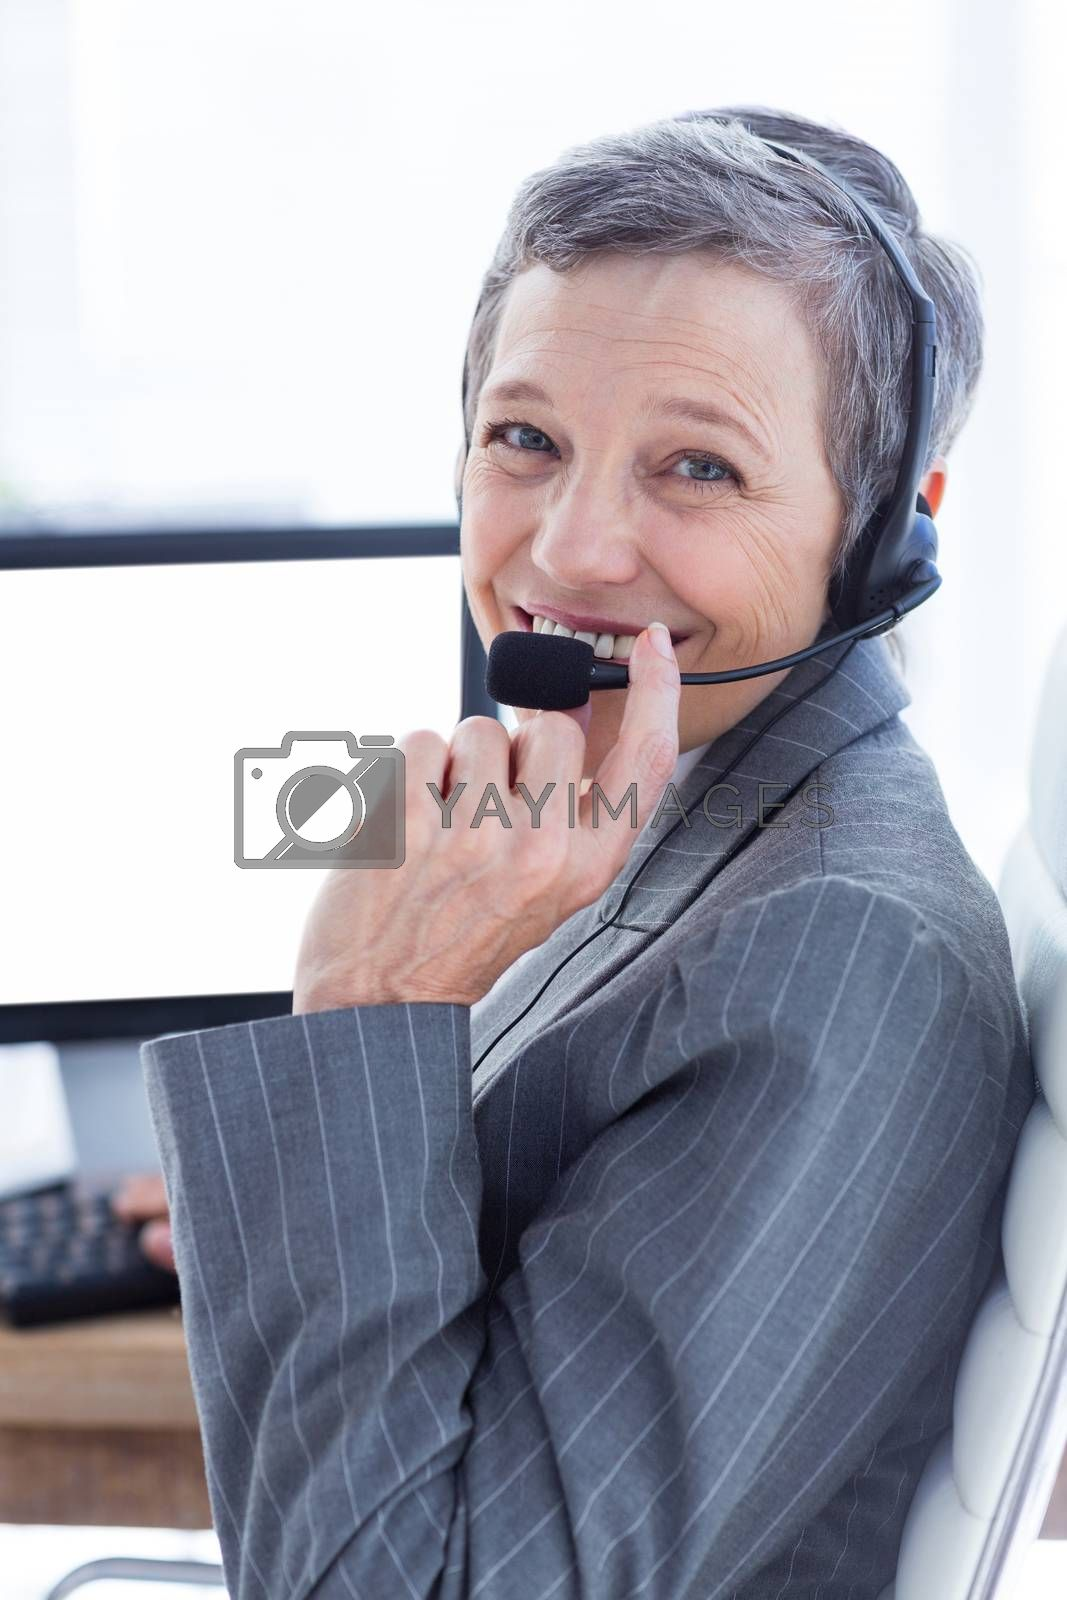 Royalty free image of Smiling businesswoman phoning and using computer  by Wavebreakmedia